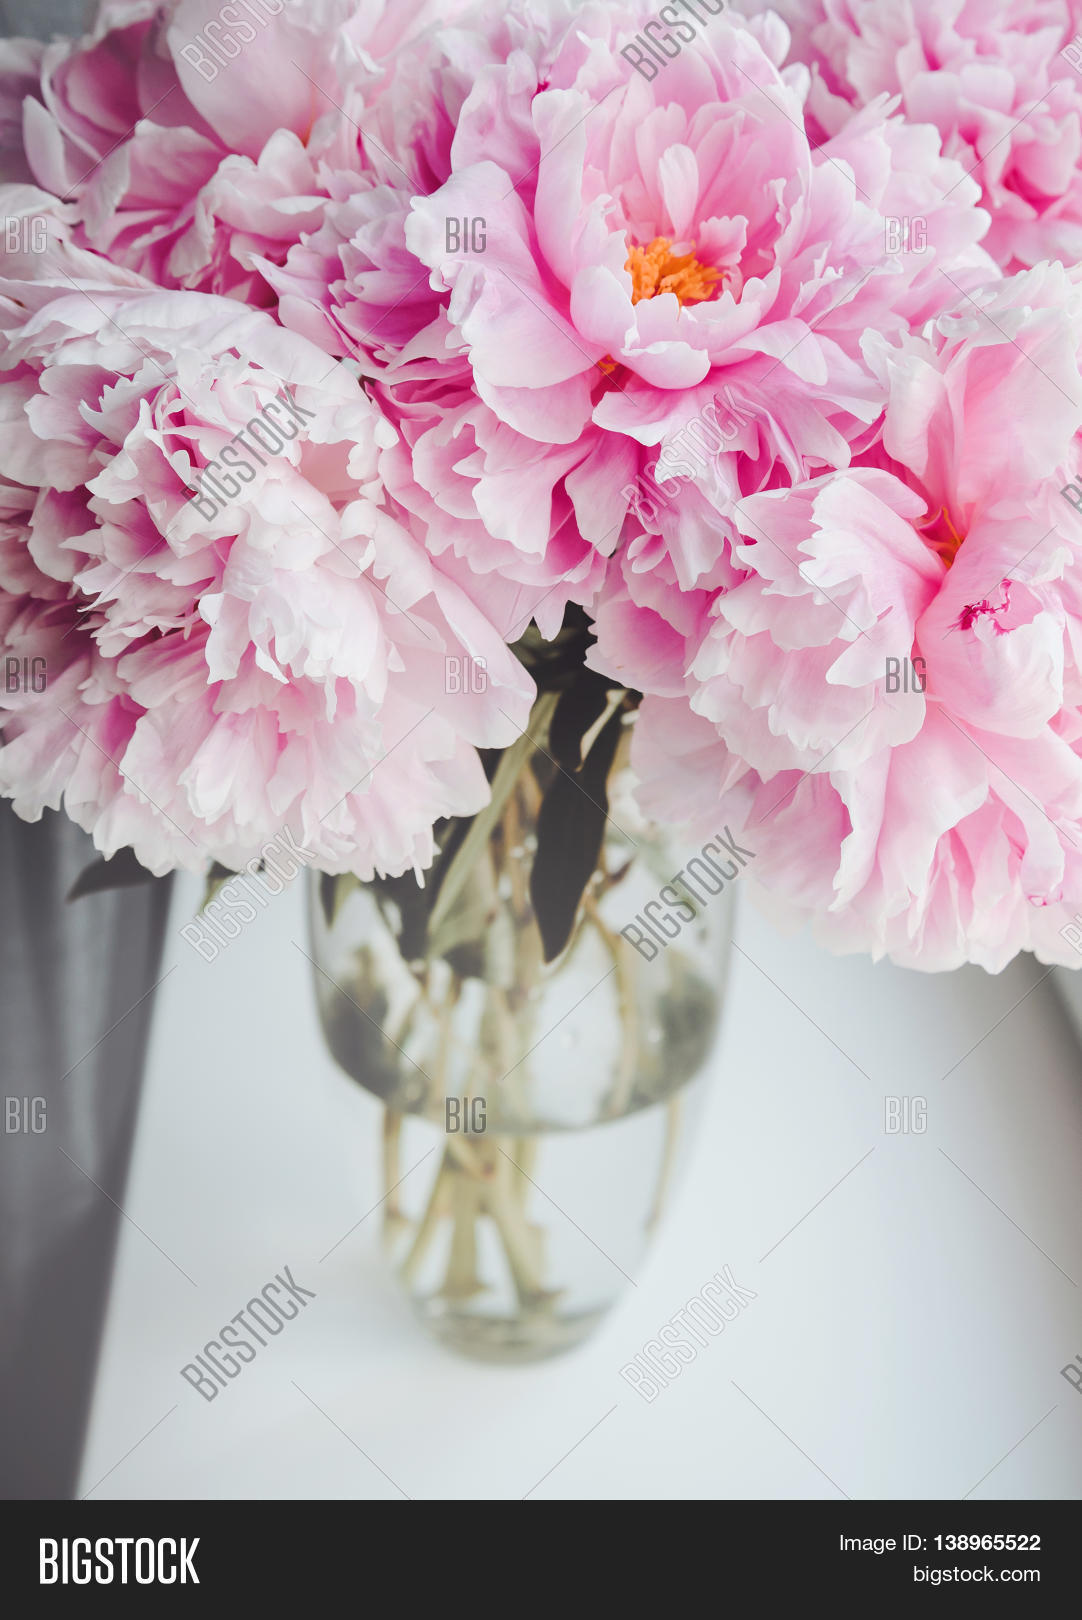 Beautiful bouquet pink peonies image photo bigstock beautiful bouquet of pink peonies peony roses flowers in vase on white window sill reviewsmspy